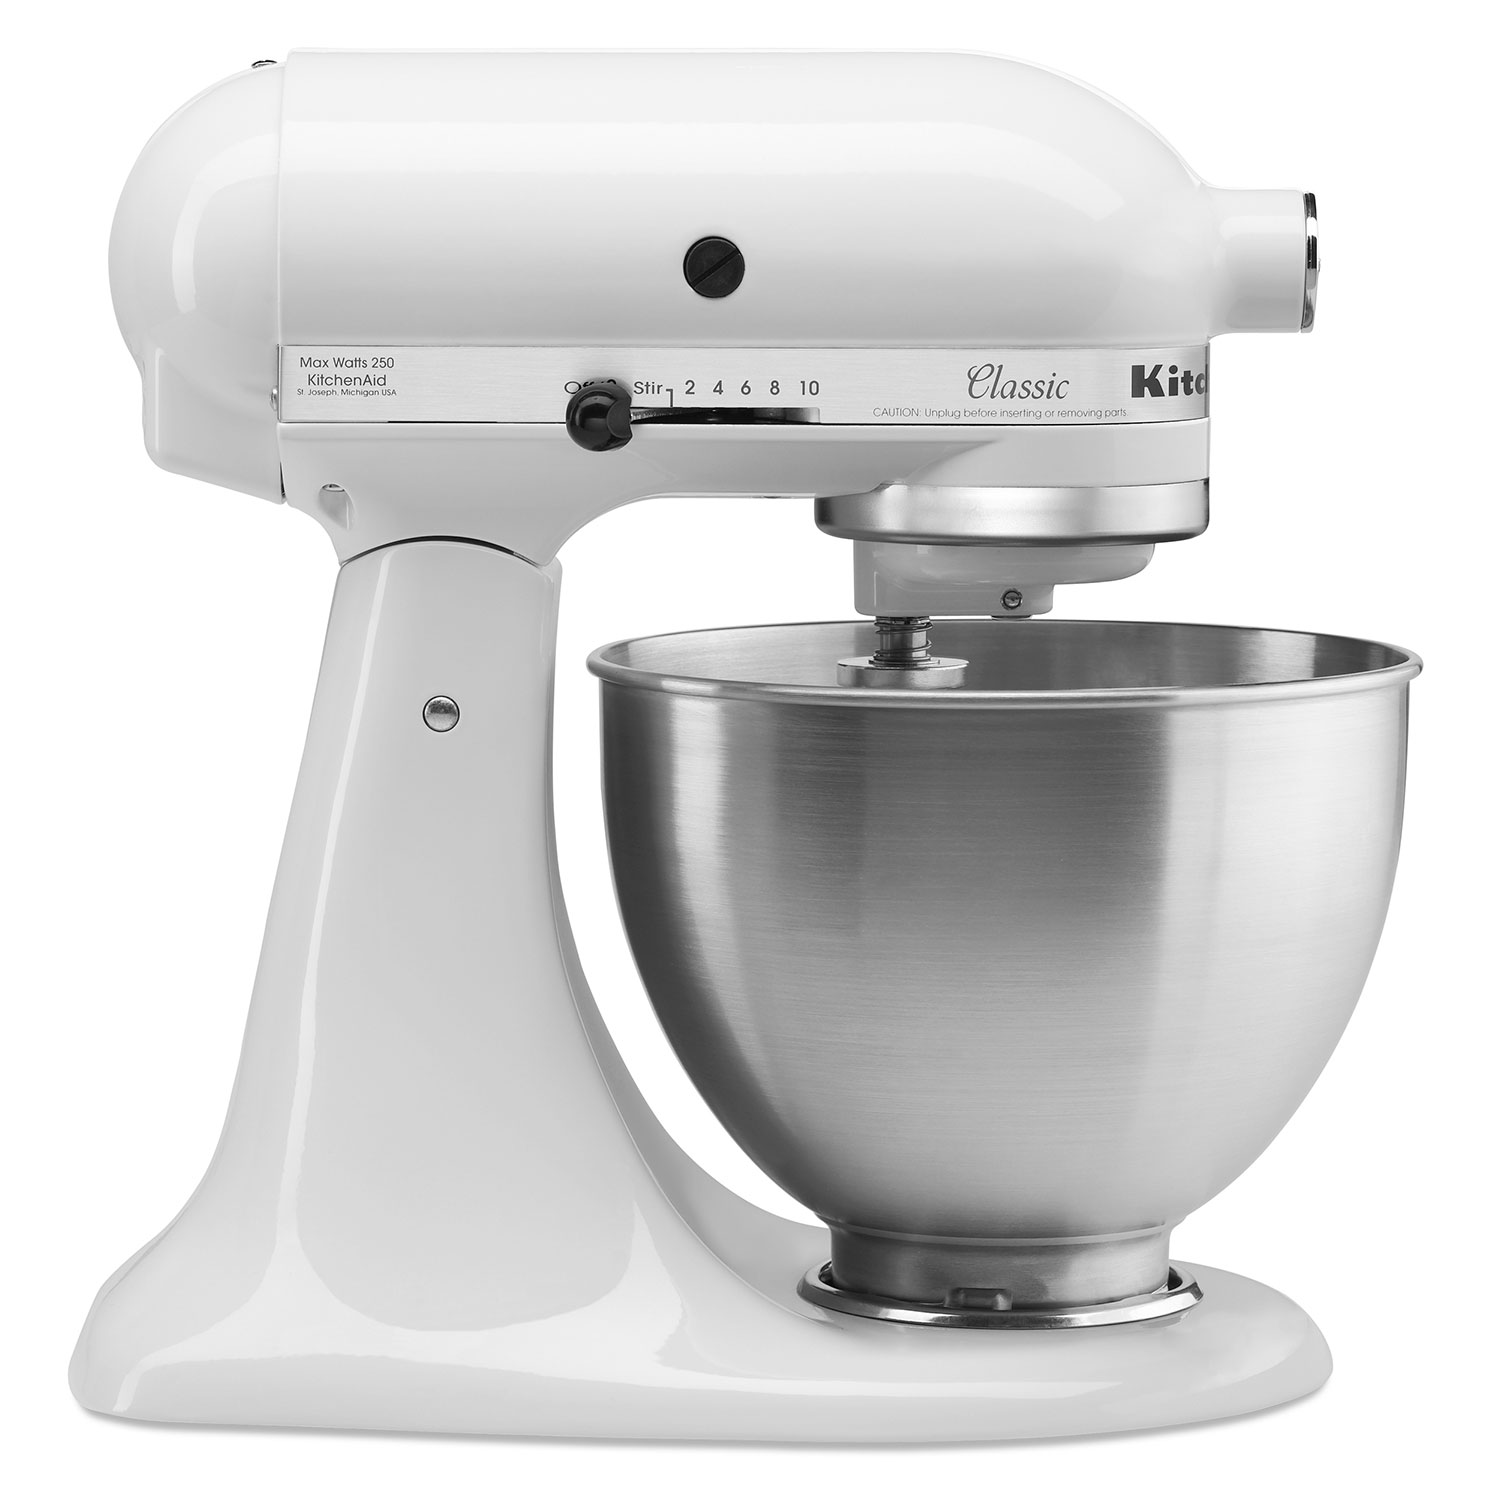 kitchenaid classic series 4.5 quart tilt head white stand mixer